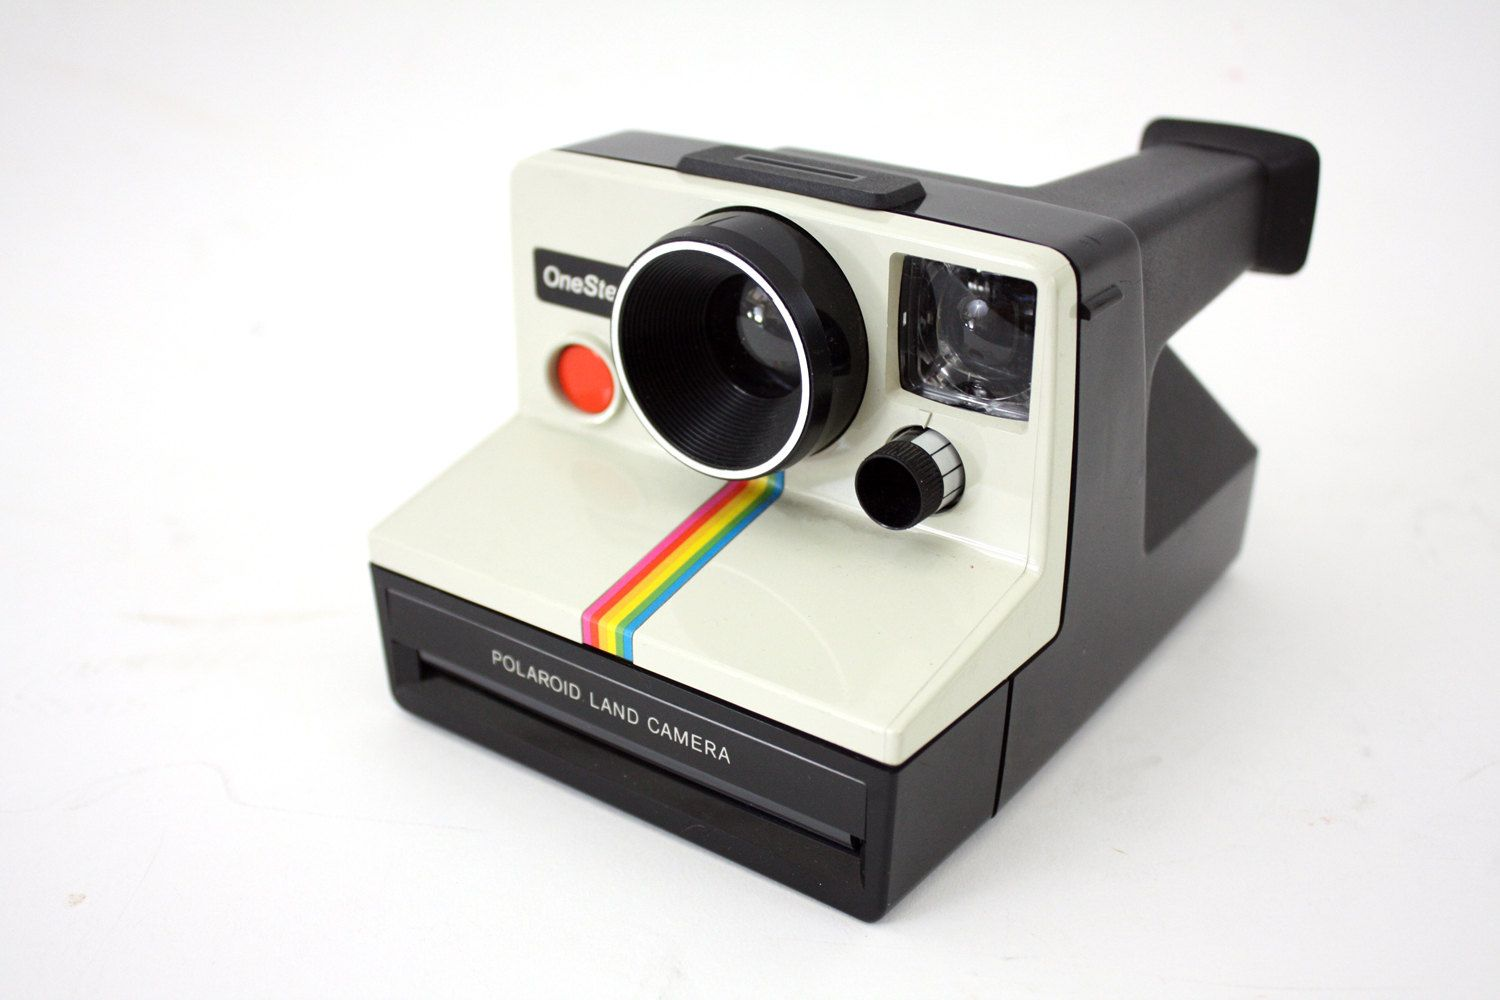 vintage polaroid camera - I actually really want one of these ...